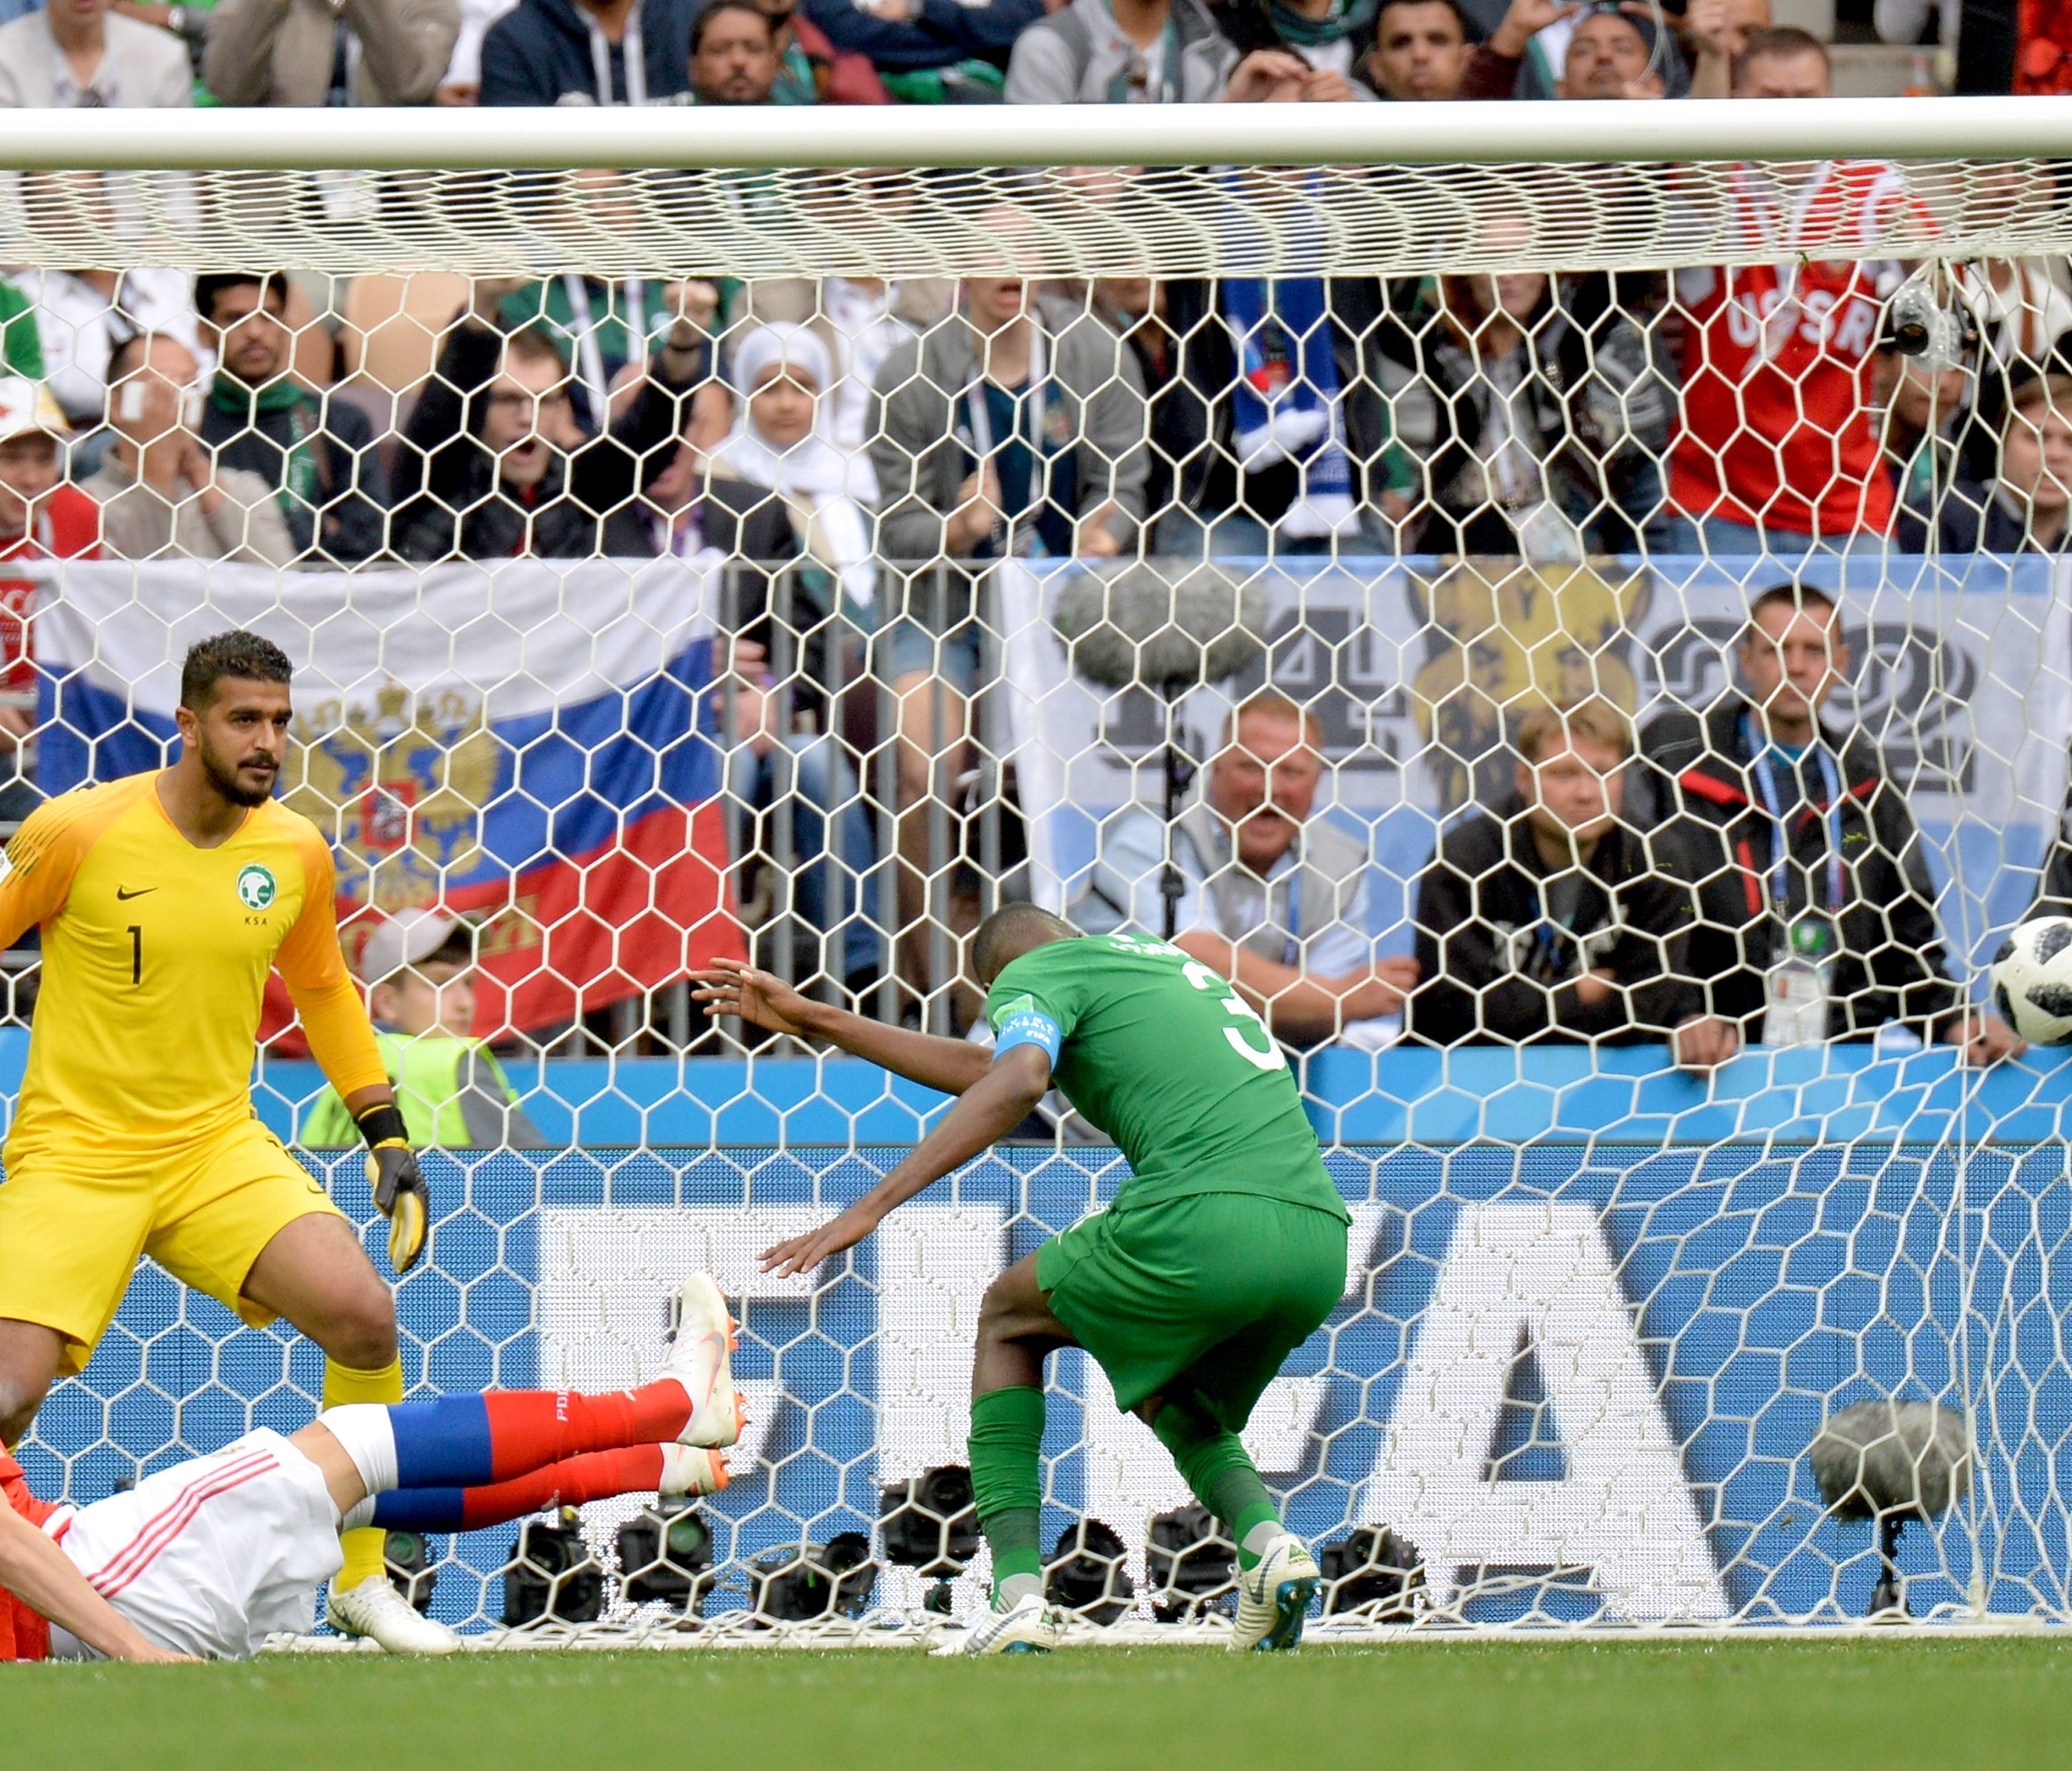 epa06808258 Artem Dzyuba (red shirt) of Russia scores the 3-0 goal during the FIFA World Cup 2018 group A preliminary round soccer match between Russia and Saudi Arabia in Moscow, Russia, 14 June 2018.    (RESTRICTIONS APPLY: Editorial Use Only, not us